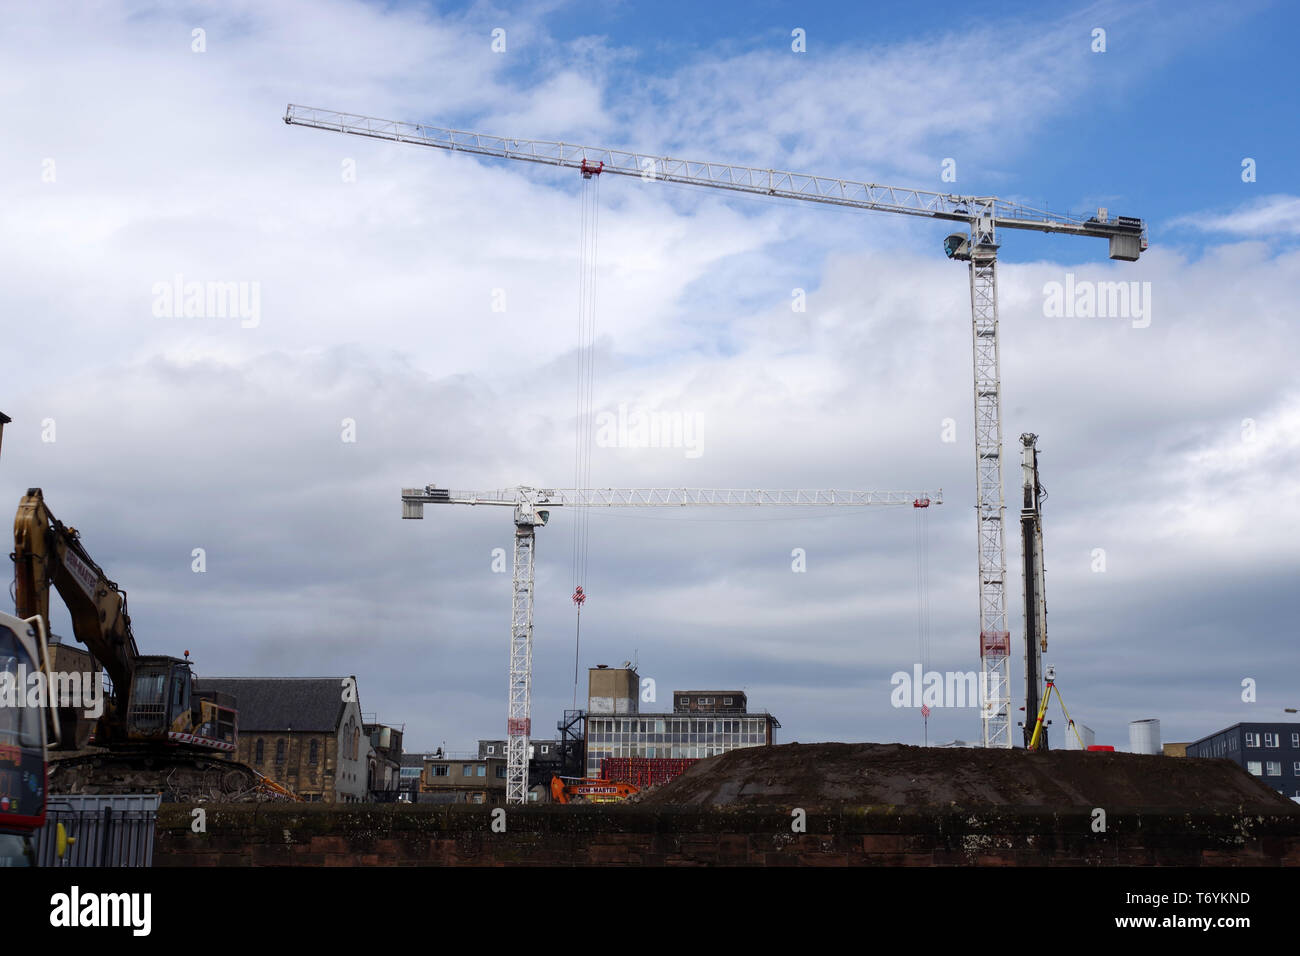 Cranes in Partick, Glasgow on the demolition site of the Western Infirmary Hospital. - Stock Image